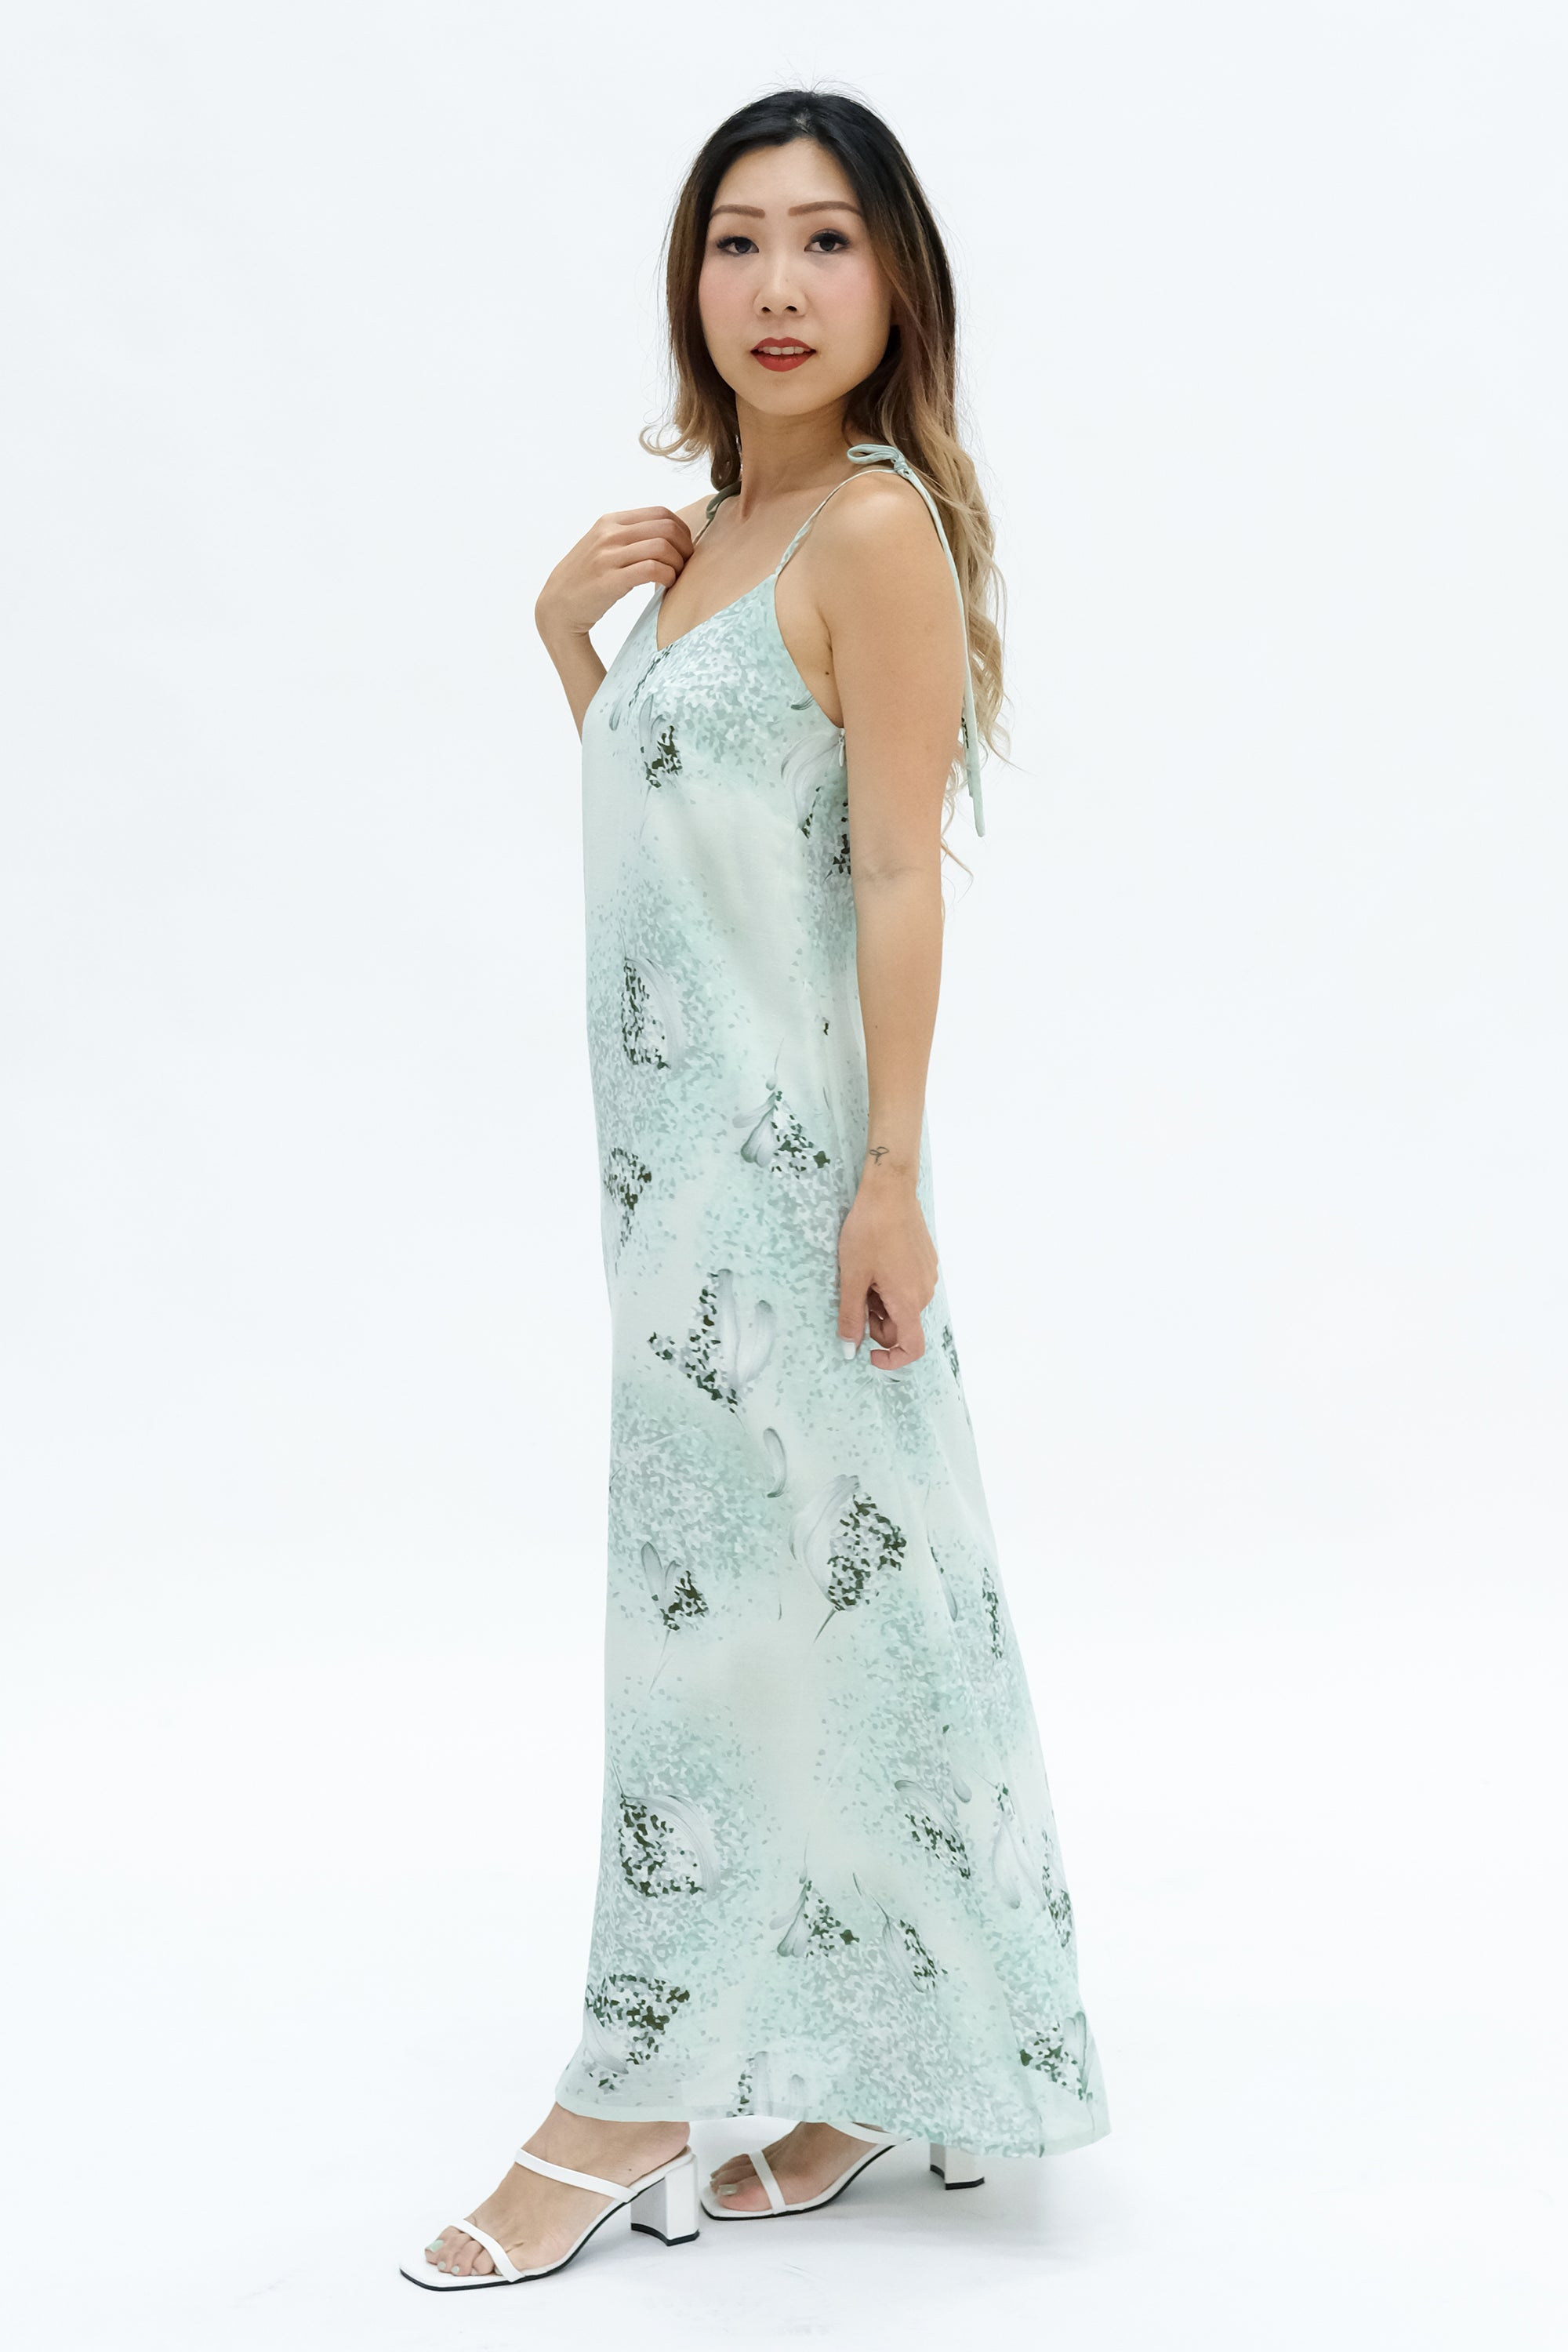 Pixel Pixie Maxi Dress